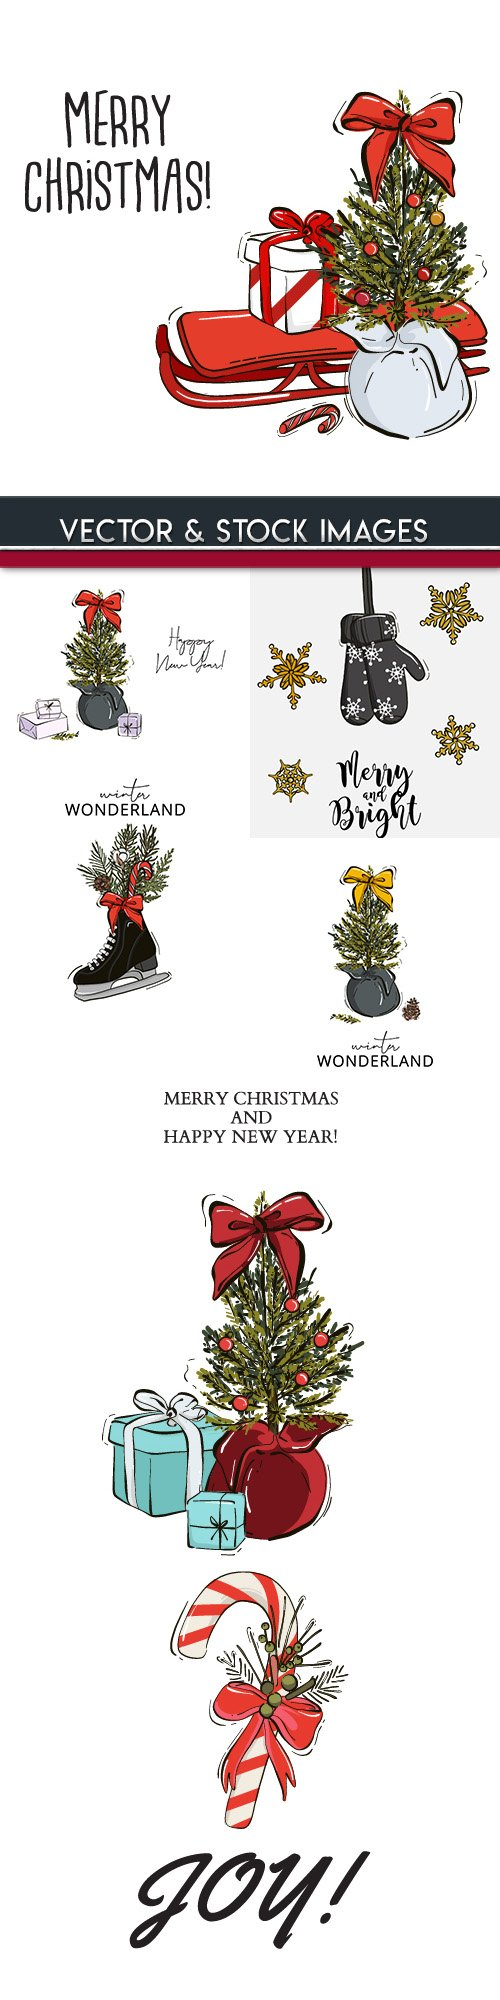 Merry Christmas and New Year background decorative 13